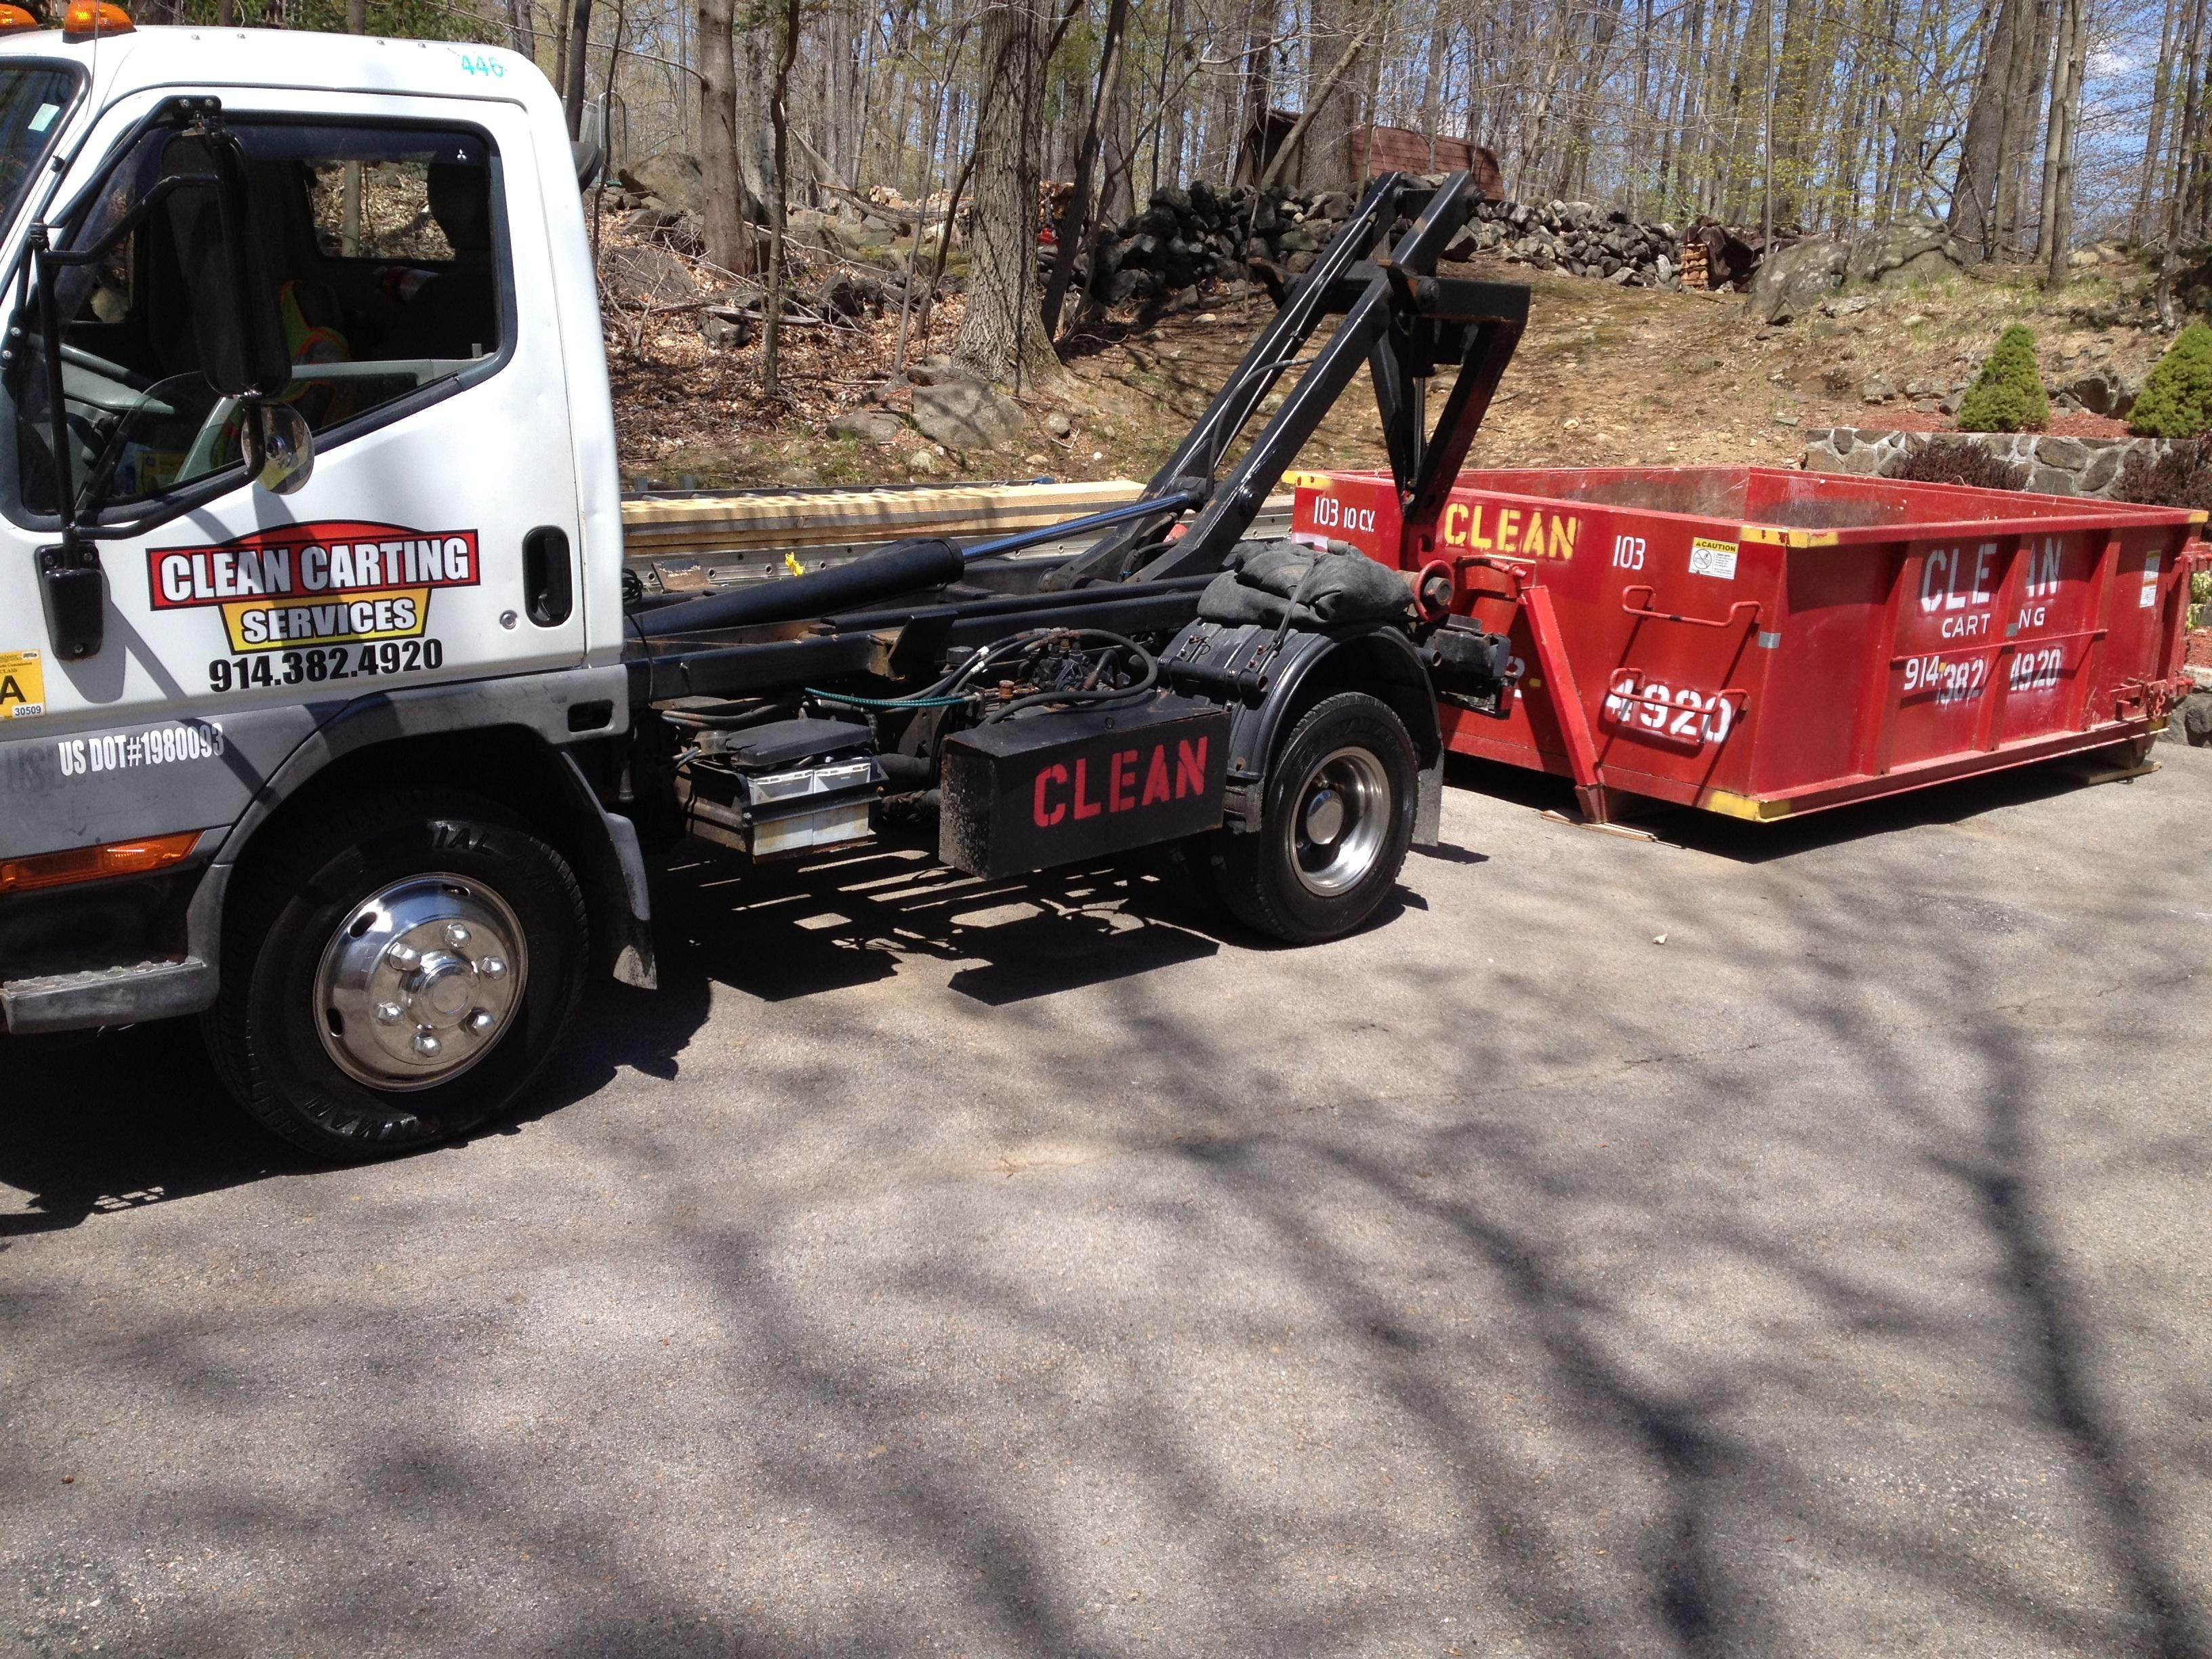 Clean Carting Services, Inc.